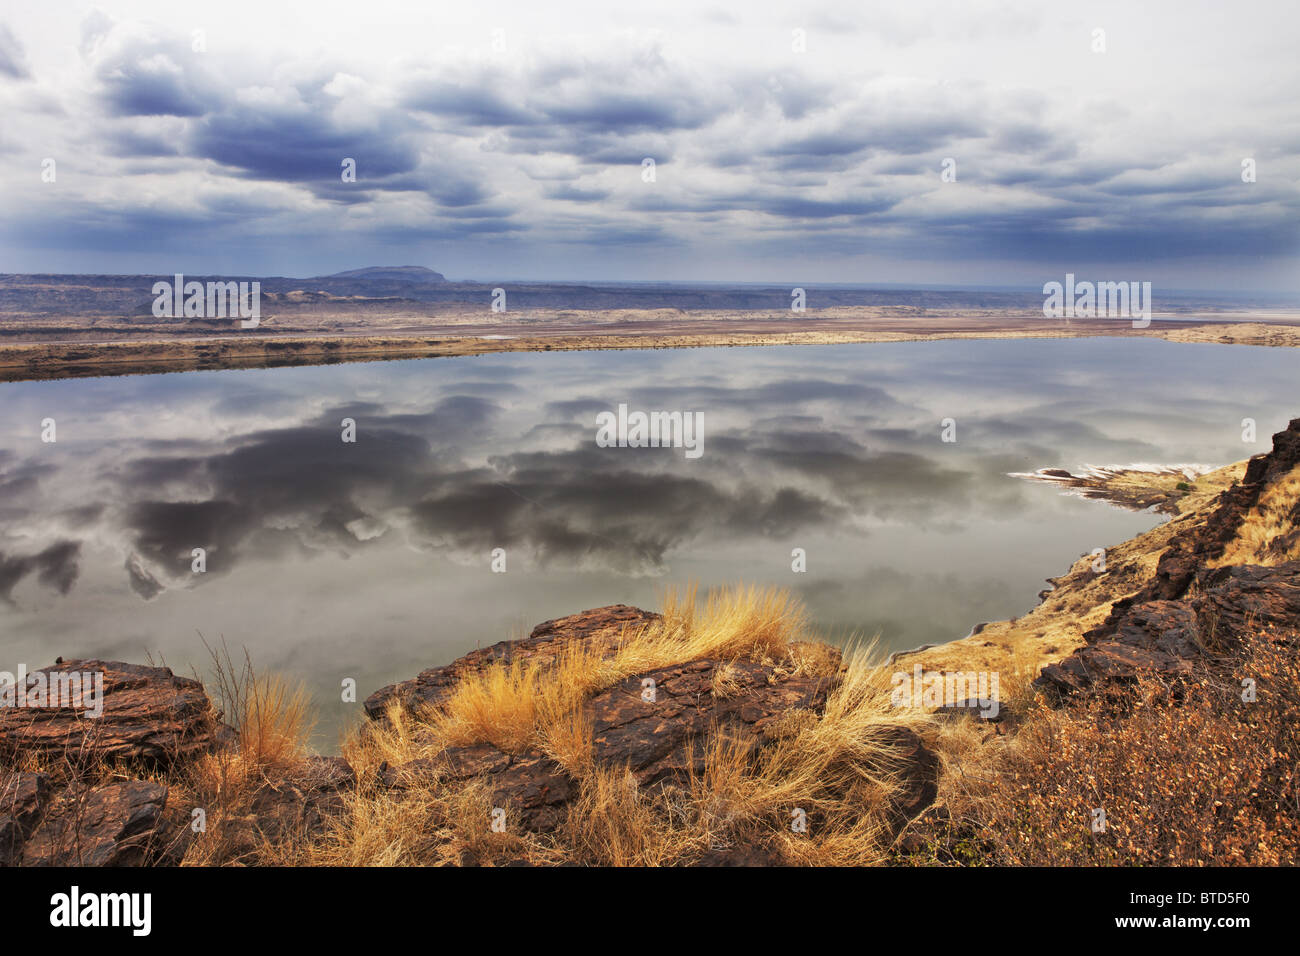 View of Lake Magadi with clouds reflected in its still waters. Rift valley. Kenya Stock Photo